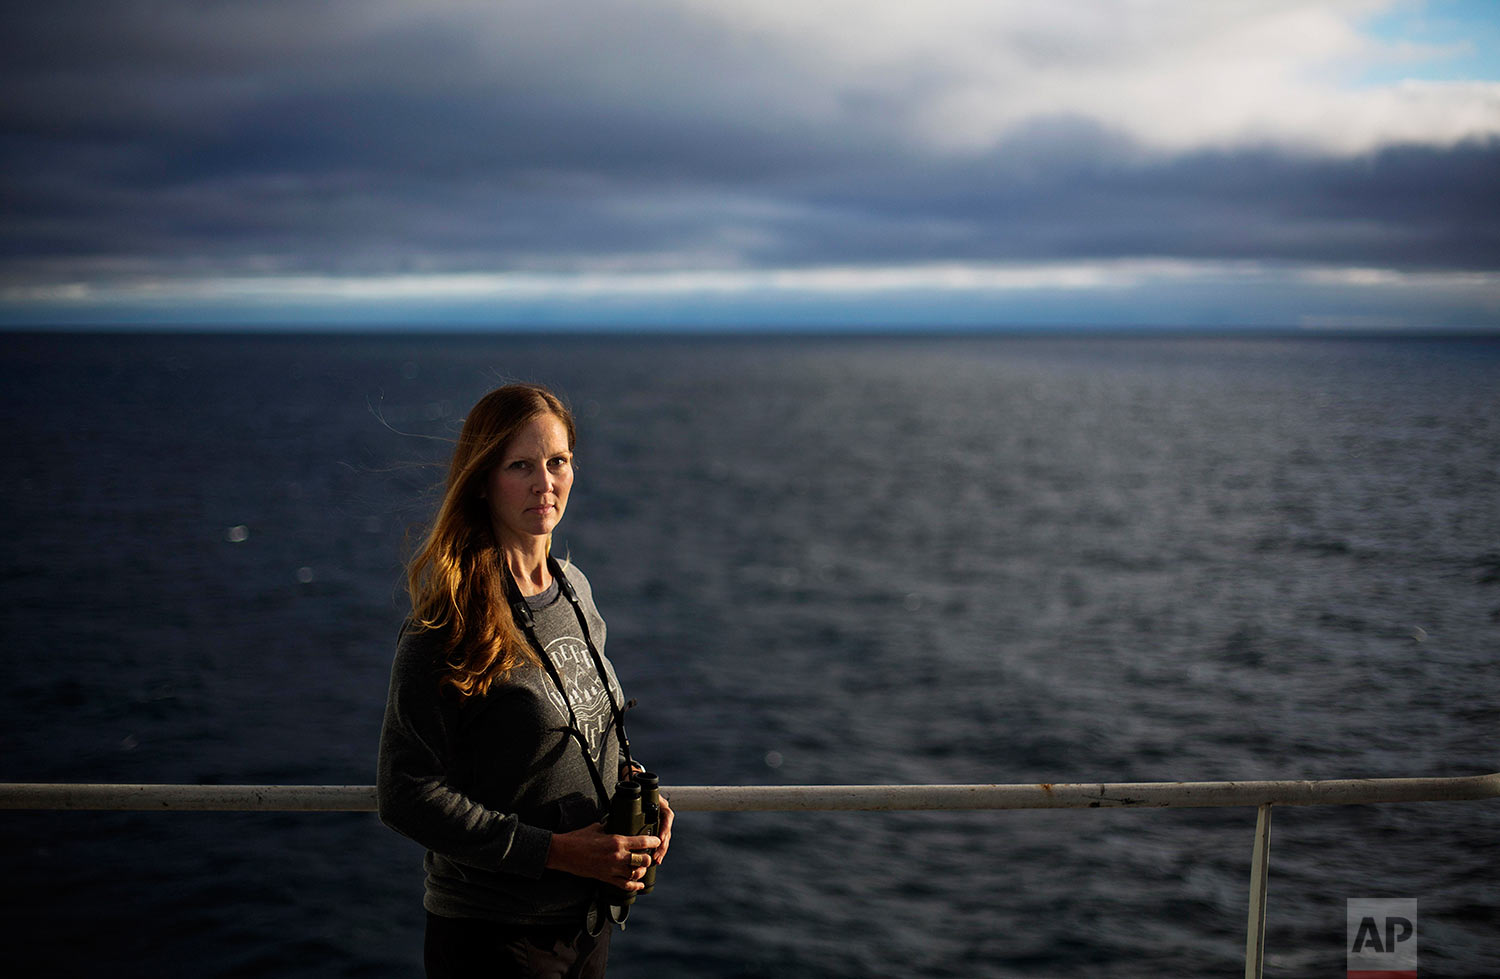 """Field biologist Paula von Weller, 45, of Portland, Ore., stands for a portrait aboard the Finnish icebreaker MSV Nordica as it sails in the North Pacific Ocean toward the Bering Strait, Tuesday, July 11, 2017. """"Few people in the world get to sail the Northwest Passage,"""" said von Weller, who will be marking her second passage after traveling through with another Finnish icebreaker in 2015. She is observing wildlife in the Arctic and hopes this time to see the elusive narwhal, the unicorn of the sea. """"I've been fascinated with the Arctic. It is very special to me. I think it's just this mythical place."""" (AP Photo/David Goldman)"""